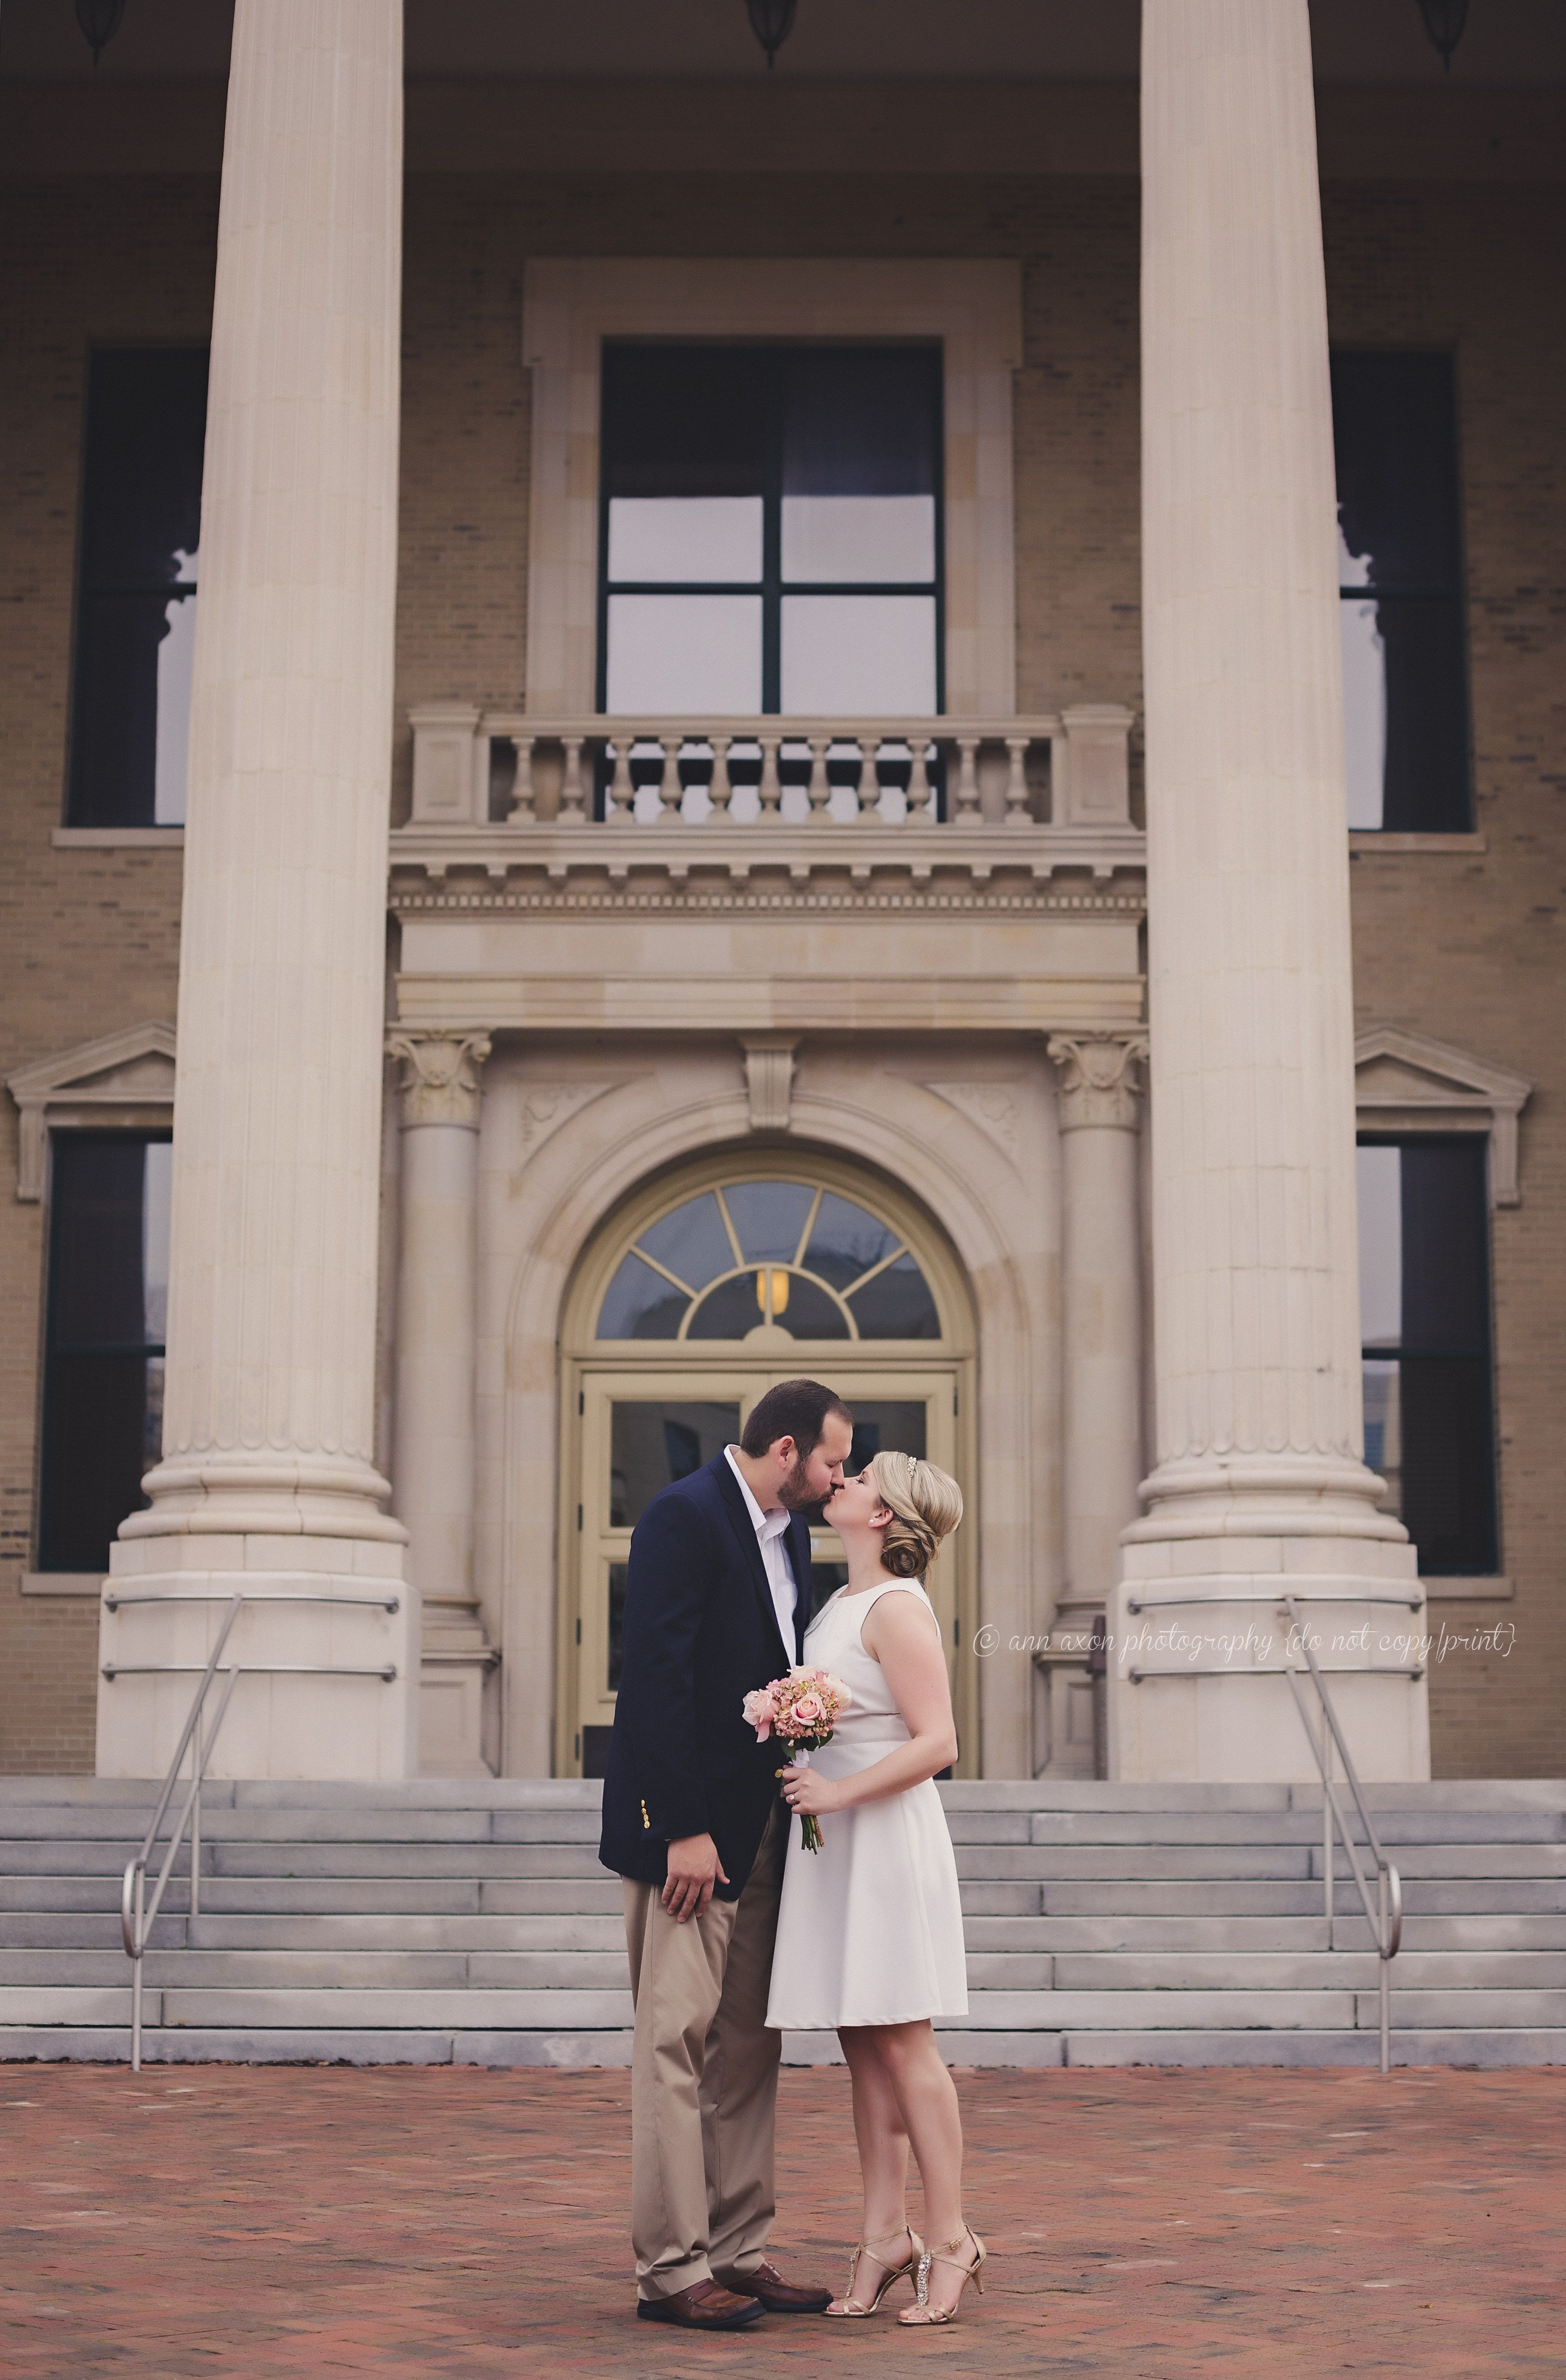 Ann Axon Photography Www Annaxonphotography Deland Florida Photographer Central Courthouse Wedding Vintage Style